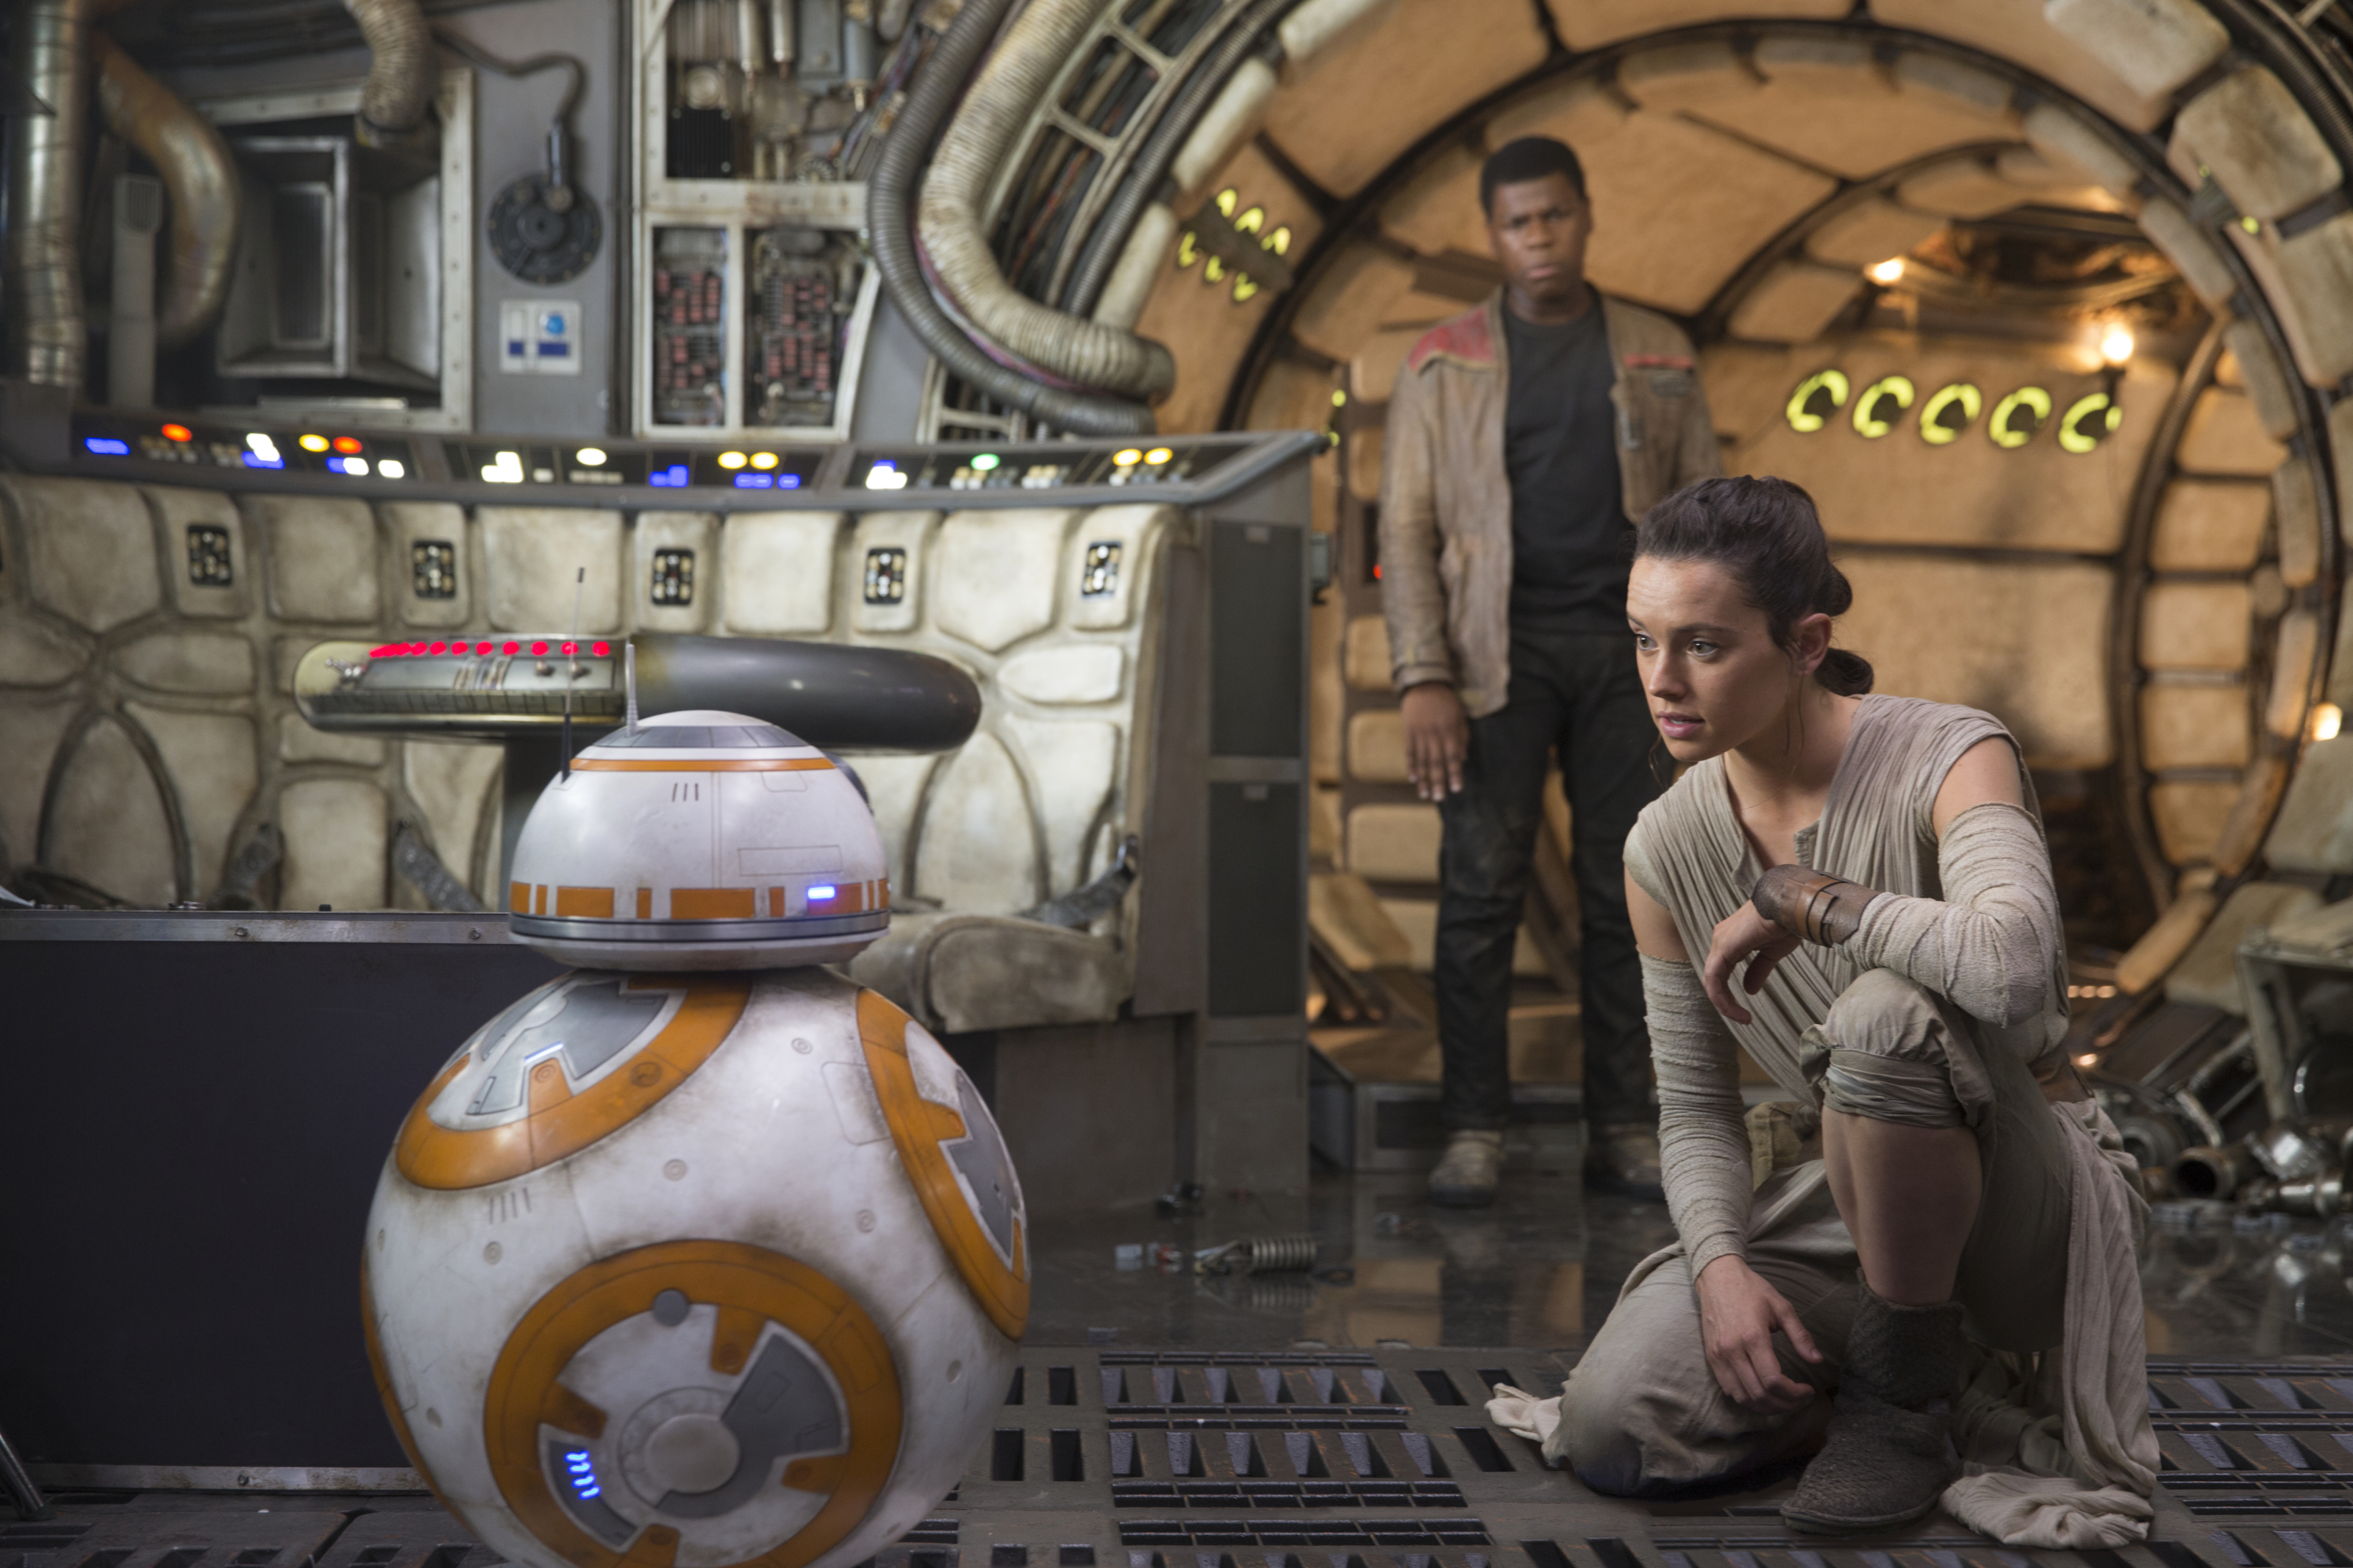 Hiatus who? A new Star Wars movie might be on the horizon